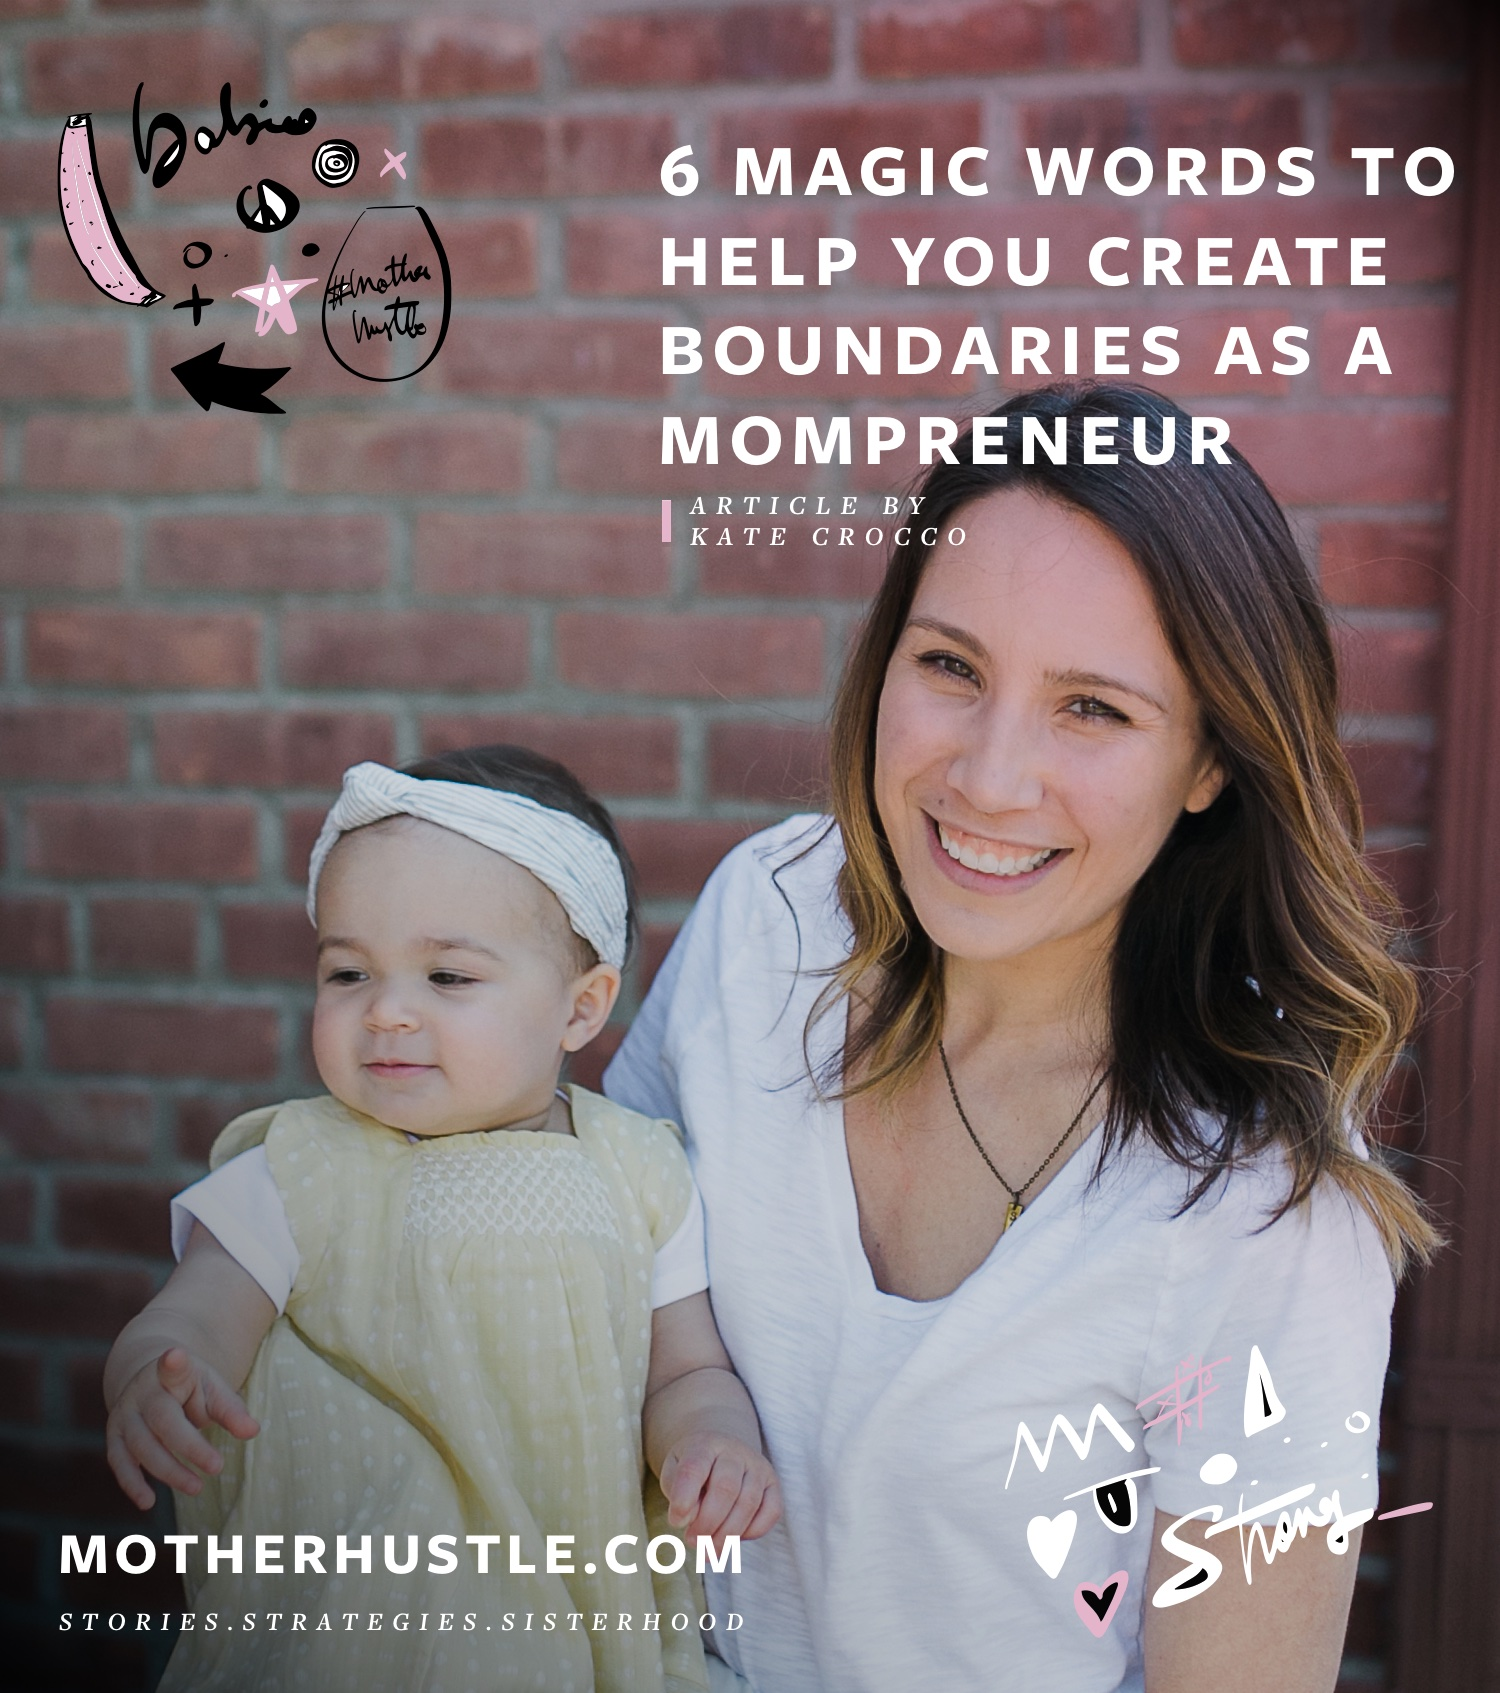 6 Magic Words to Help You Create Boundaries as a Mompreneur - By Kate Crocco for MotherHustle